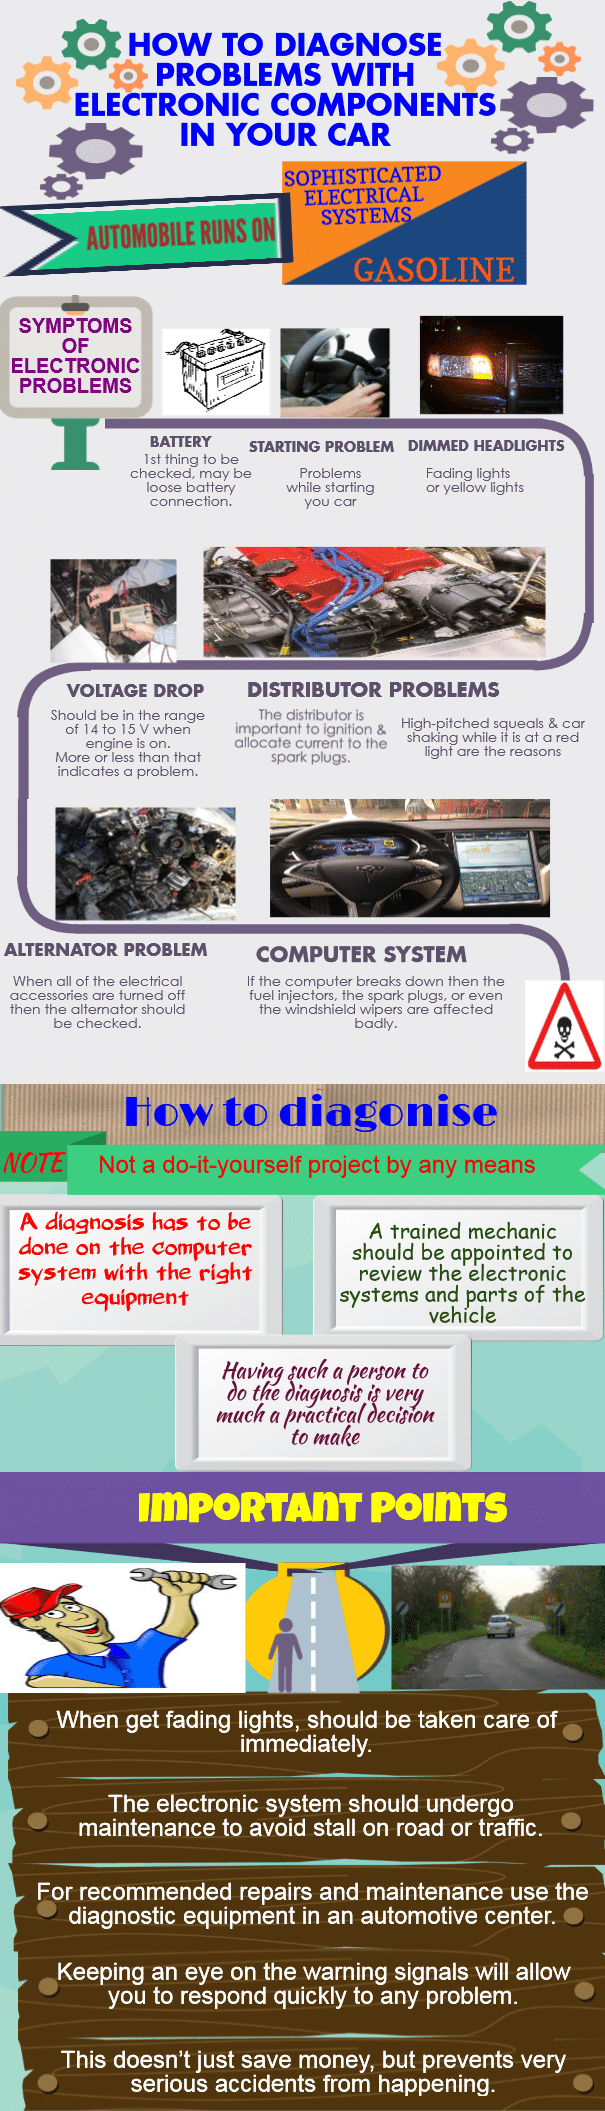 How to Diagnose Problems With Electrical Components in Your Car